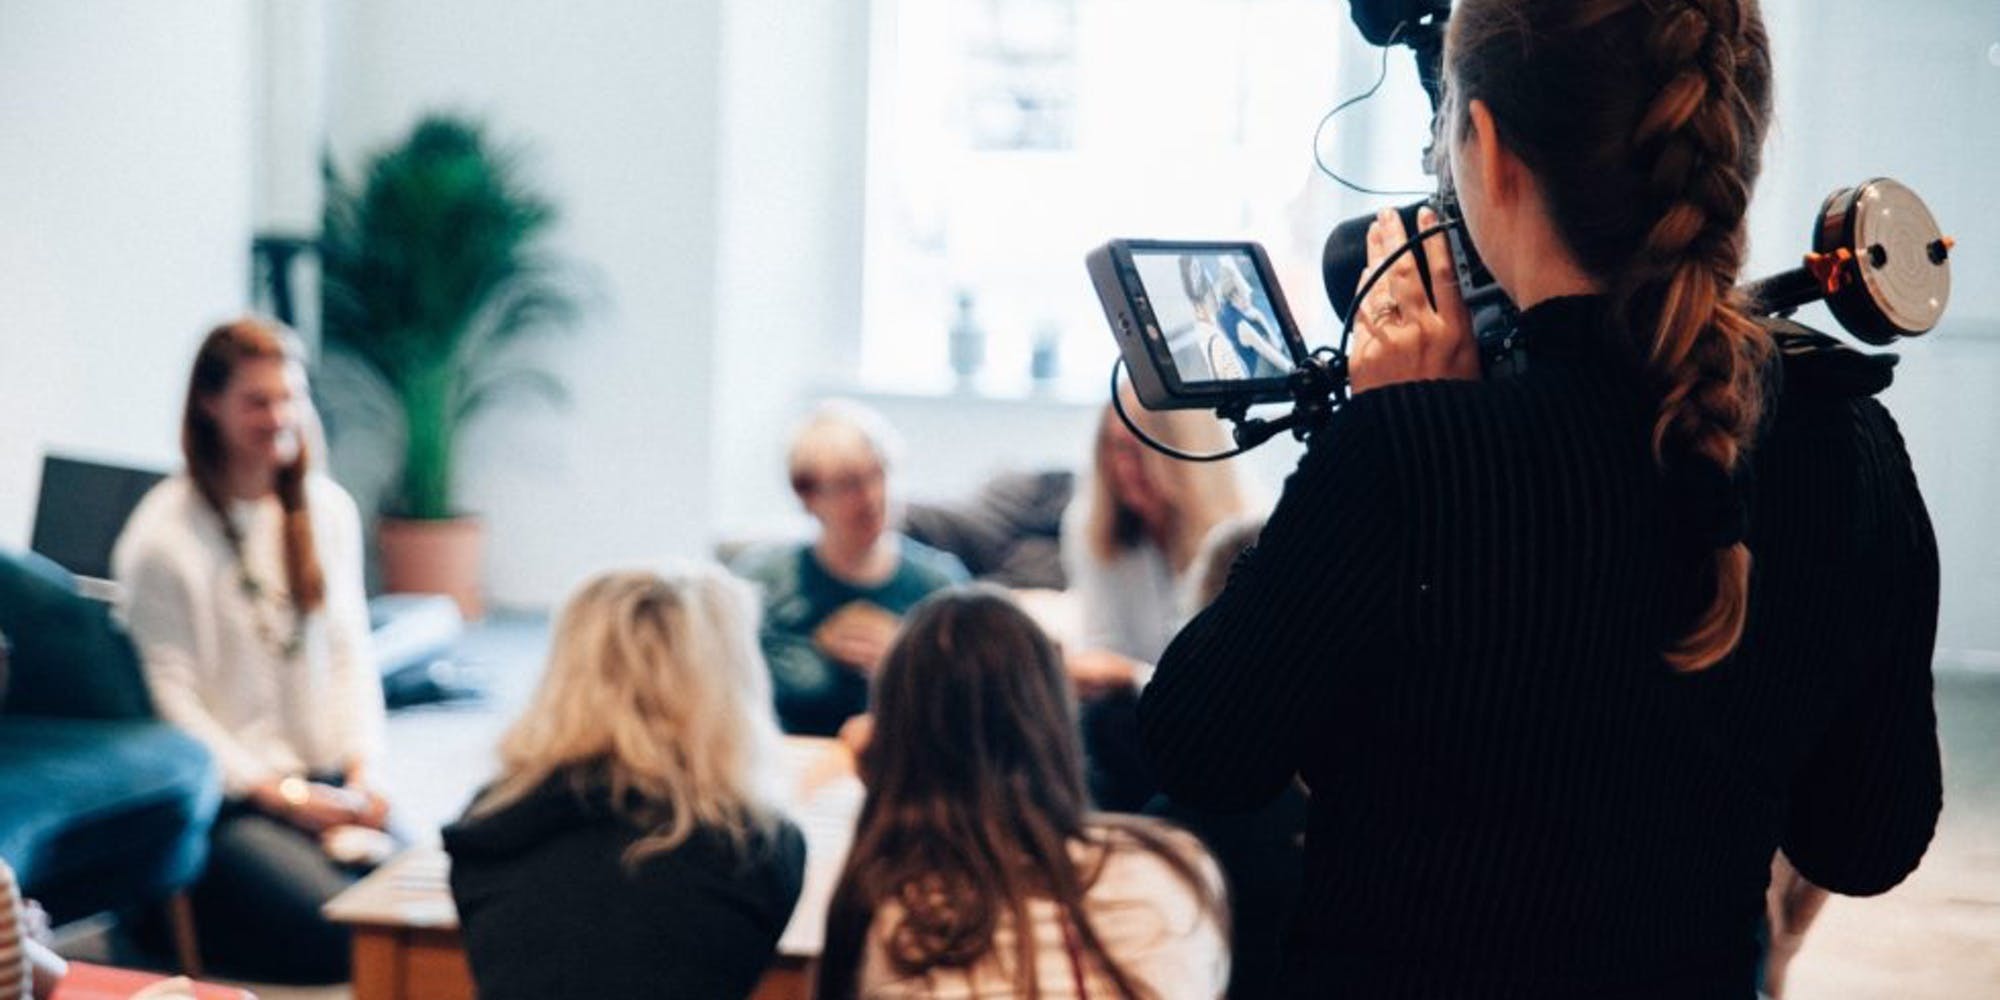 Behind the scenes of a lady recording a video of a meeting